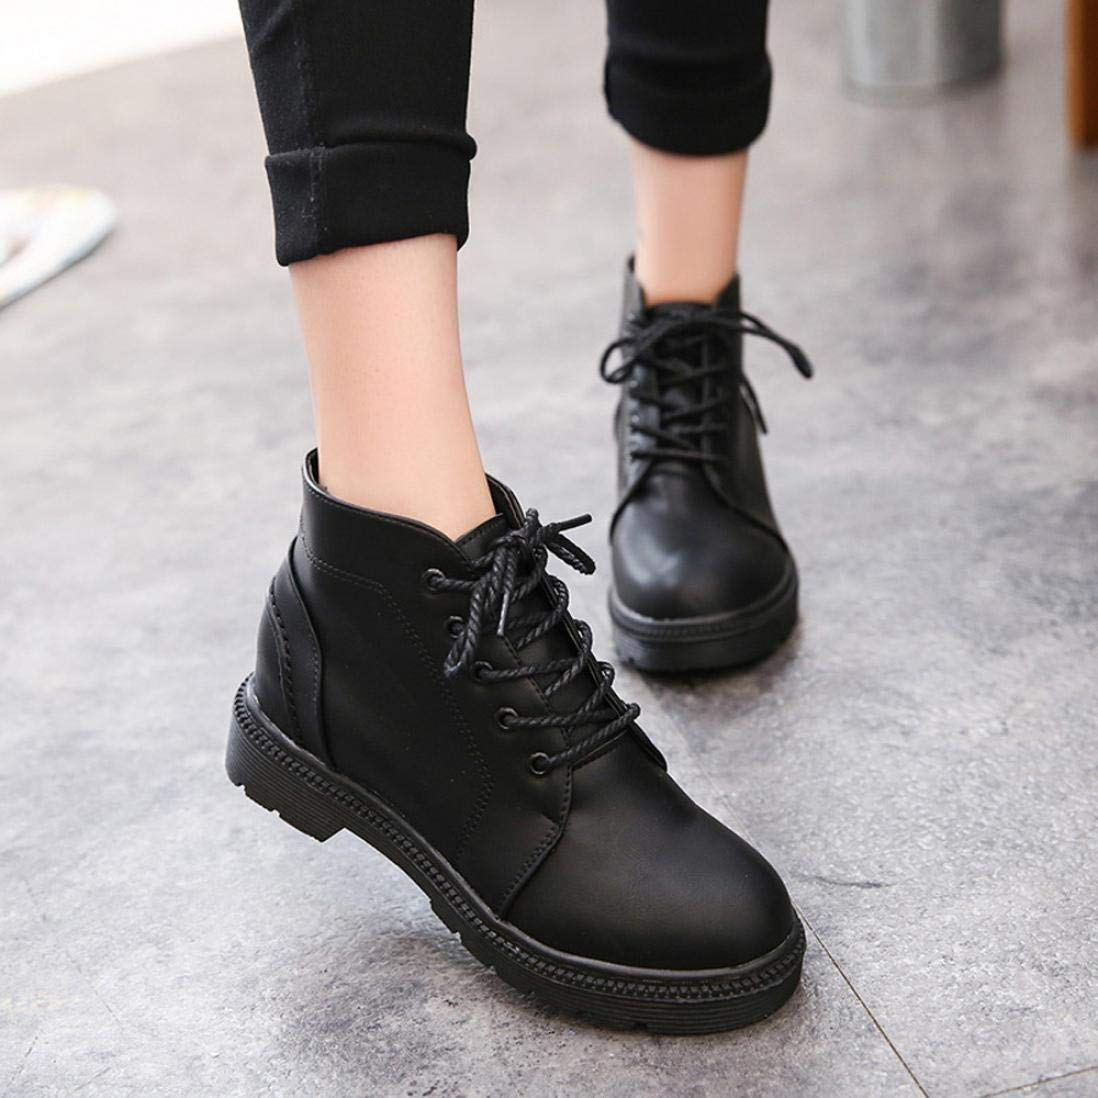 Gyoume Women Ankle Boot Lace-up Low Heel Boots Shoes Platform Martin Boots Autumn Winter